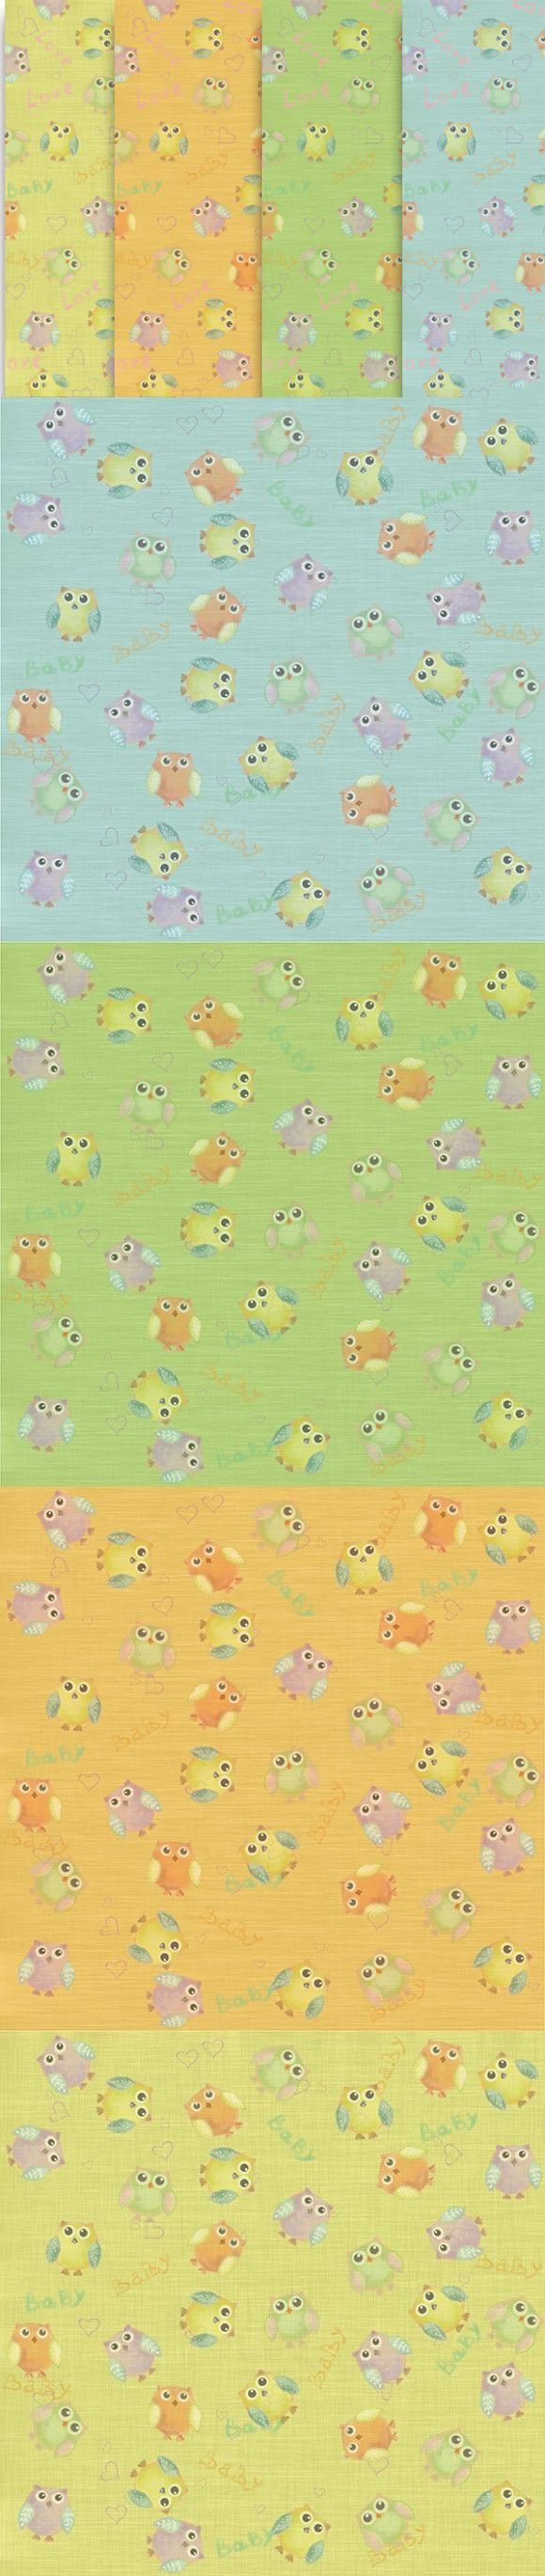 Seamless Background with owls psd. Patterns. $7.00